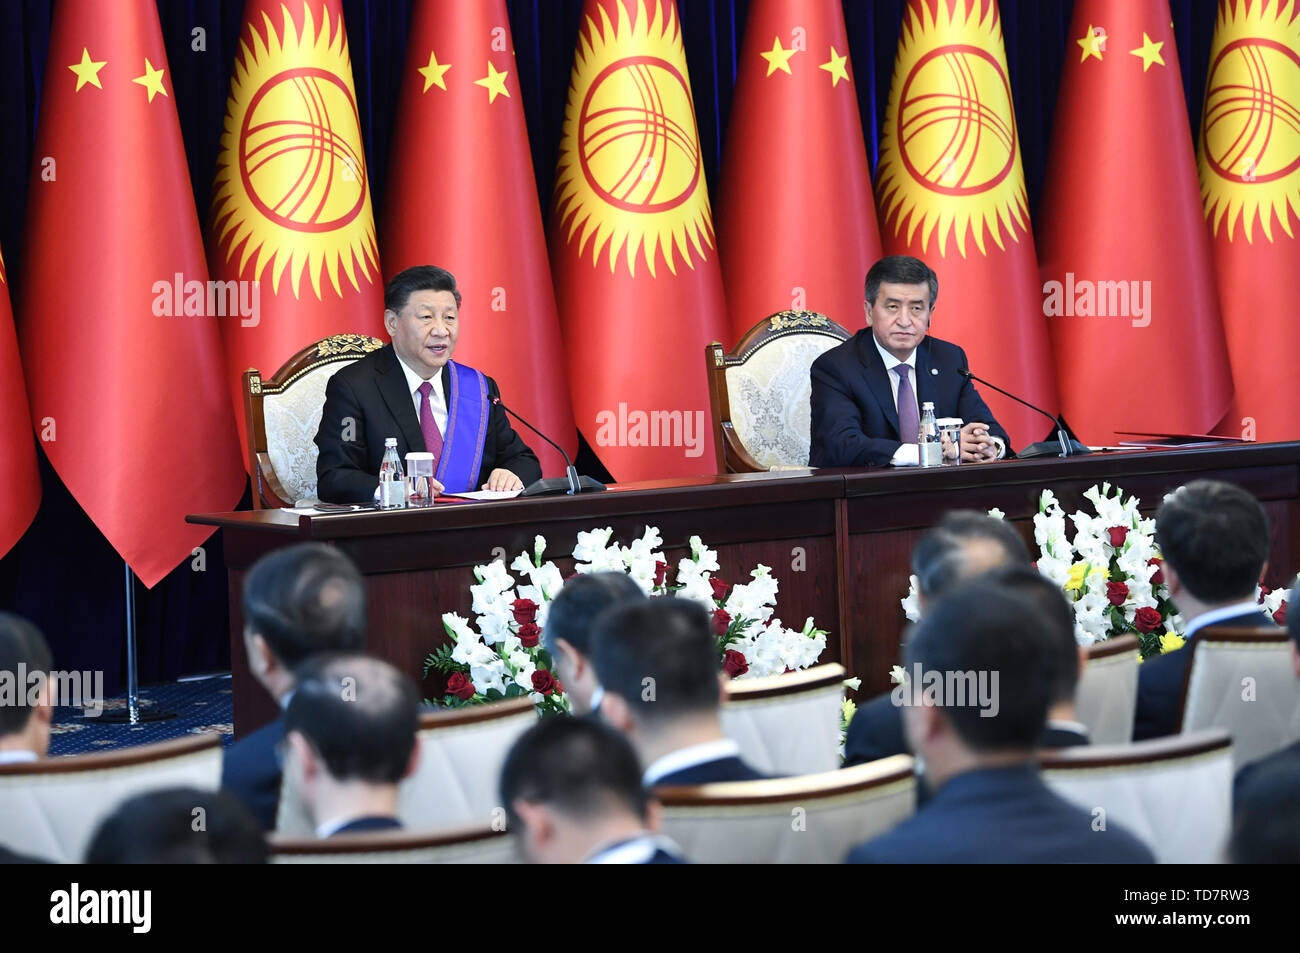 Bishkek, Kyrgyzstan. 13th June, 2019. Chinese President Xi Jinping and his Kyrgyz counterpart Sooronbay Jeenbekov meet the press after their talks in Bishkek, Kyrgyzstan, June 13, 2019. Xi and Jeenbekov held talks here Thursday, agreeing to take their countries' comprehensive strategic partnership to new heights. Credit: Yin Bogu/Xinhua/Alamy Live News - Stock Image